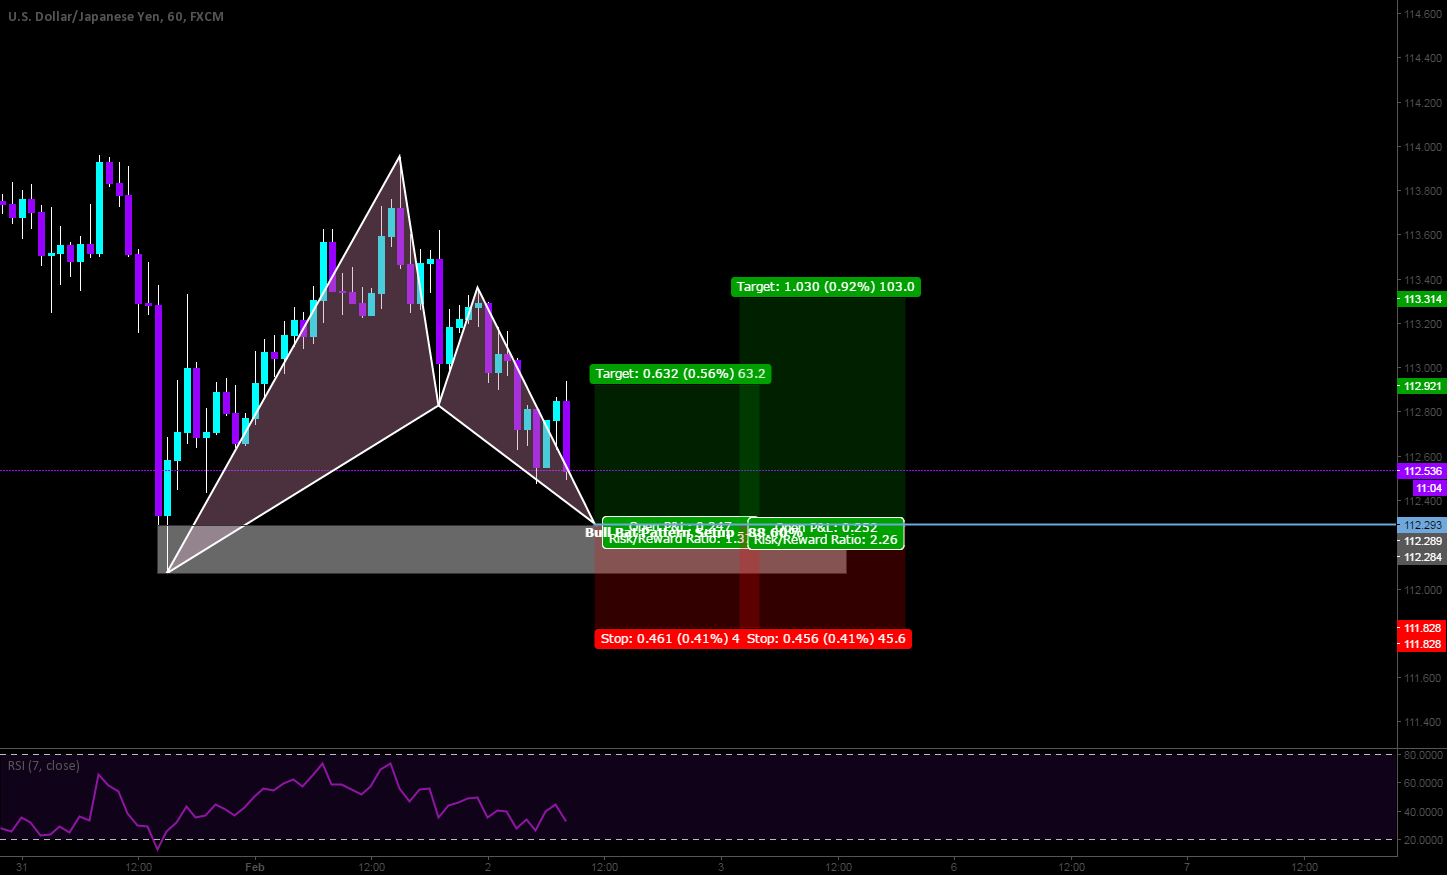 Long opportunity on the Bull Bat Setup with a 1:1.37 RR